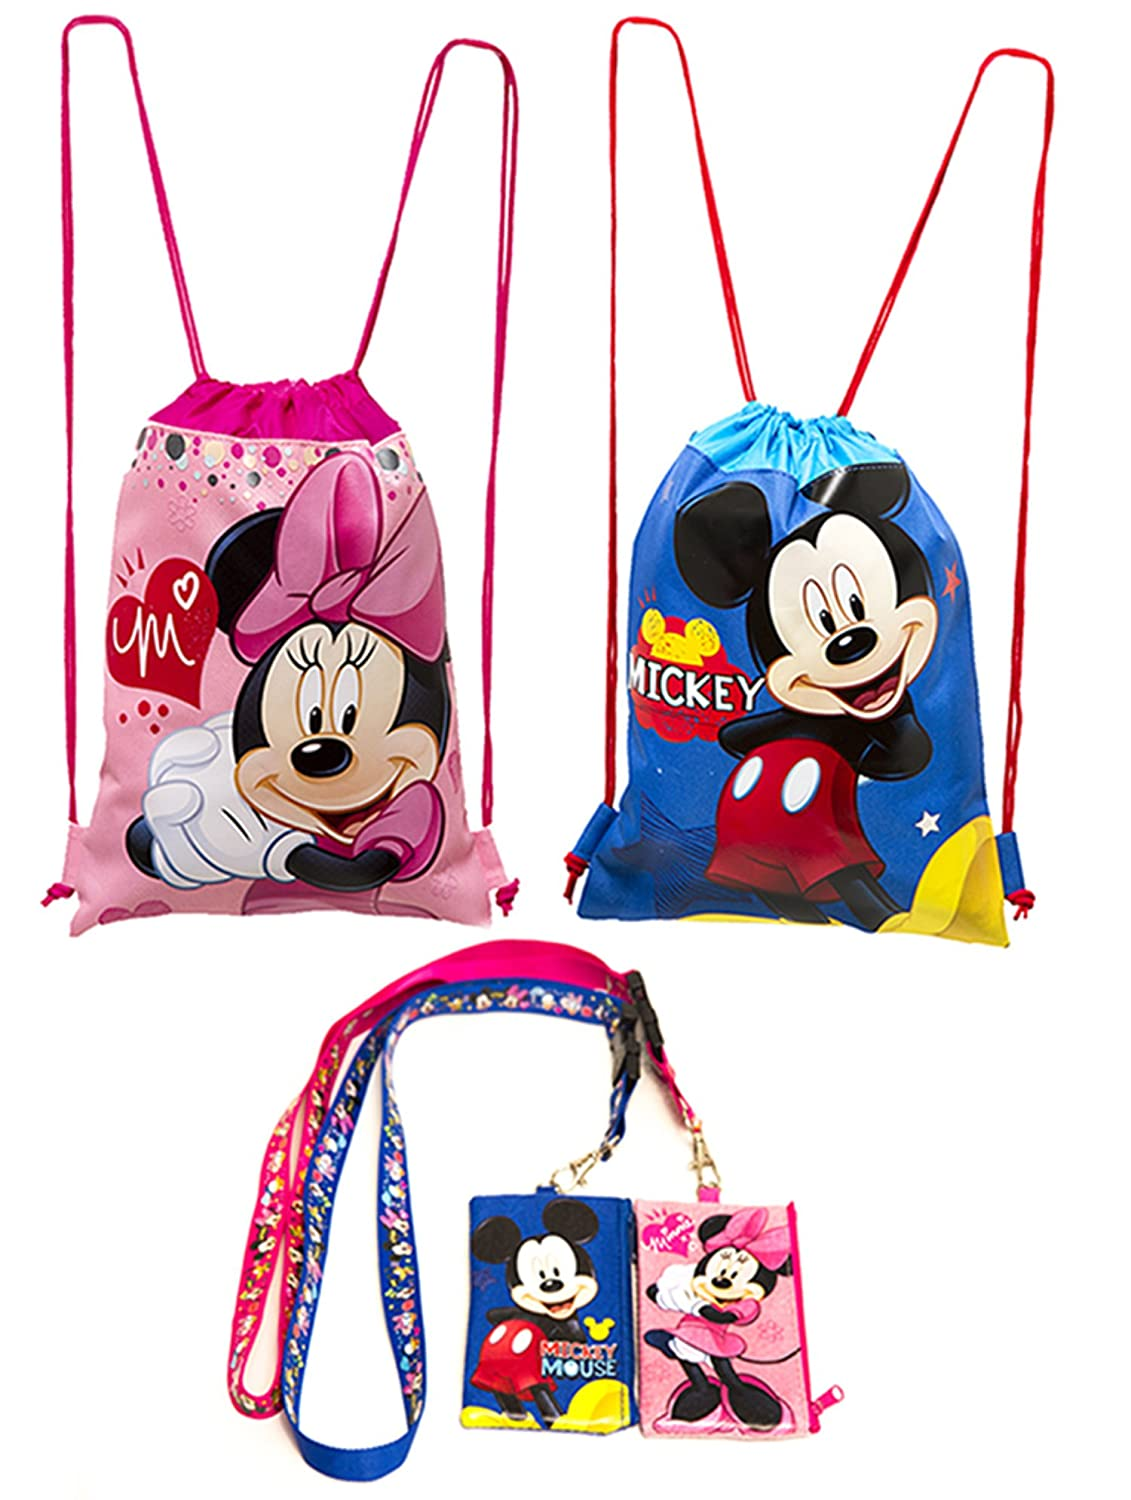 (4ct) Mickey & Minnie Mouse Drawstring Backpack - Lanyards with Detachable Coin Purse Disney